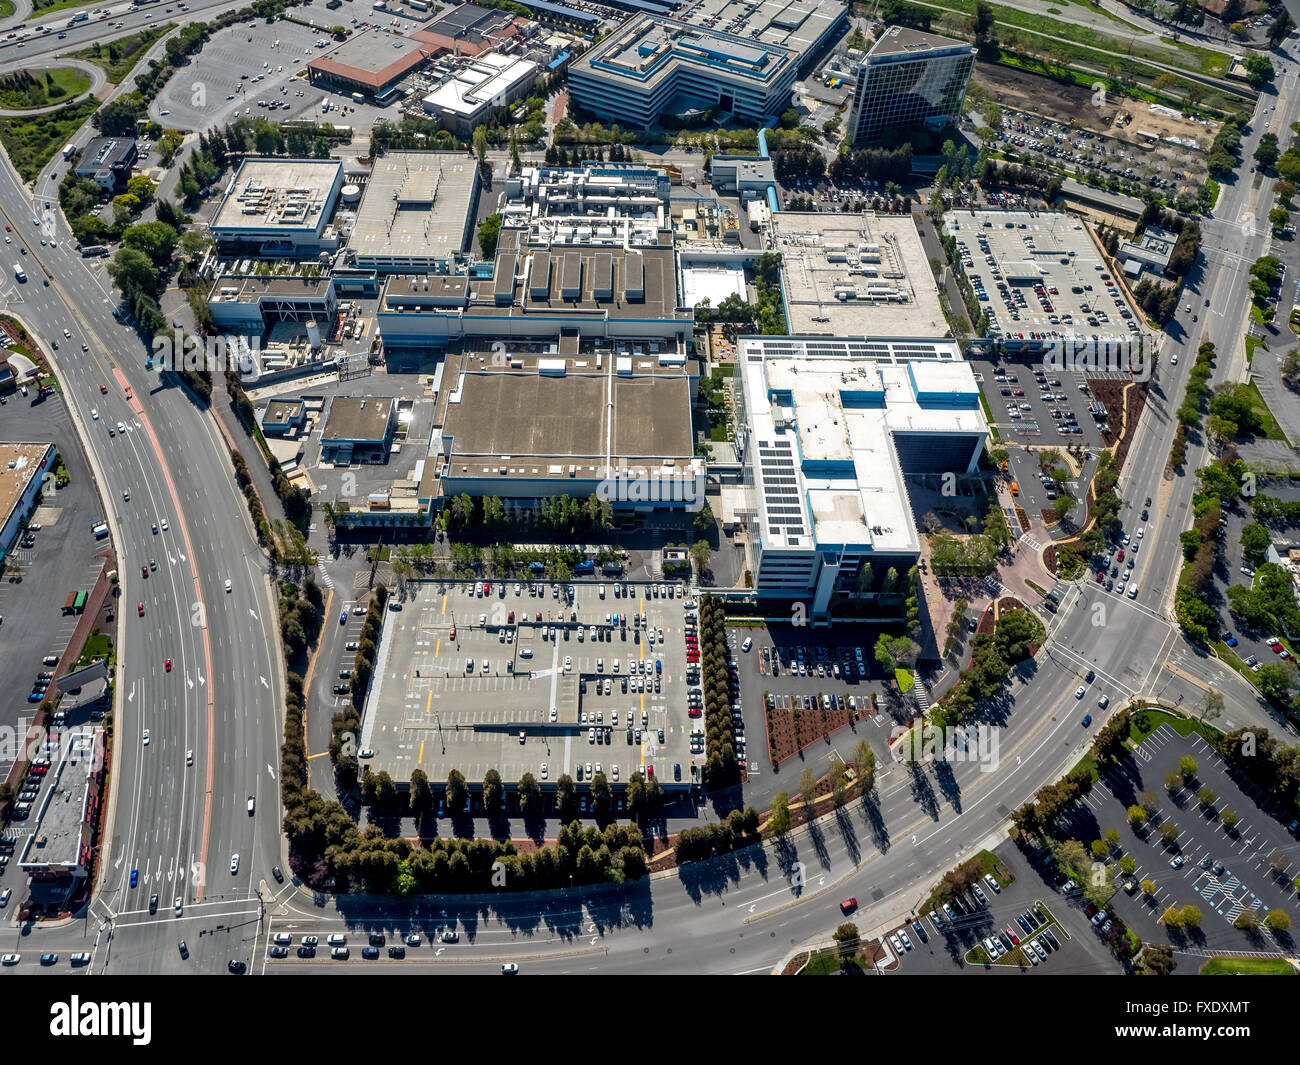 Intel headquarters, Vishay Americas inc. Broadcom ca technologies, Sophos, Santa Clara, Silicon Valley, California, - Stock Image